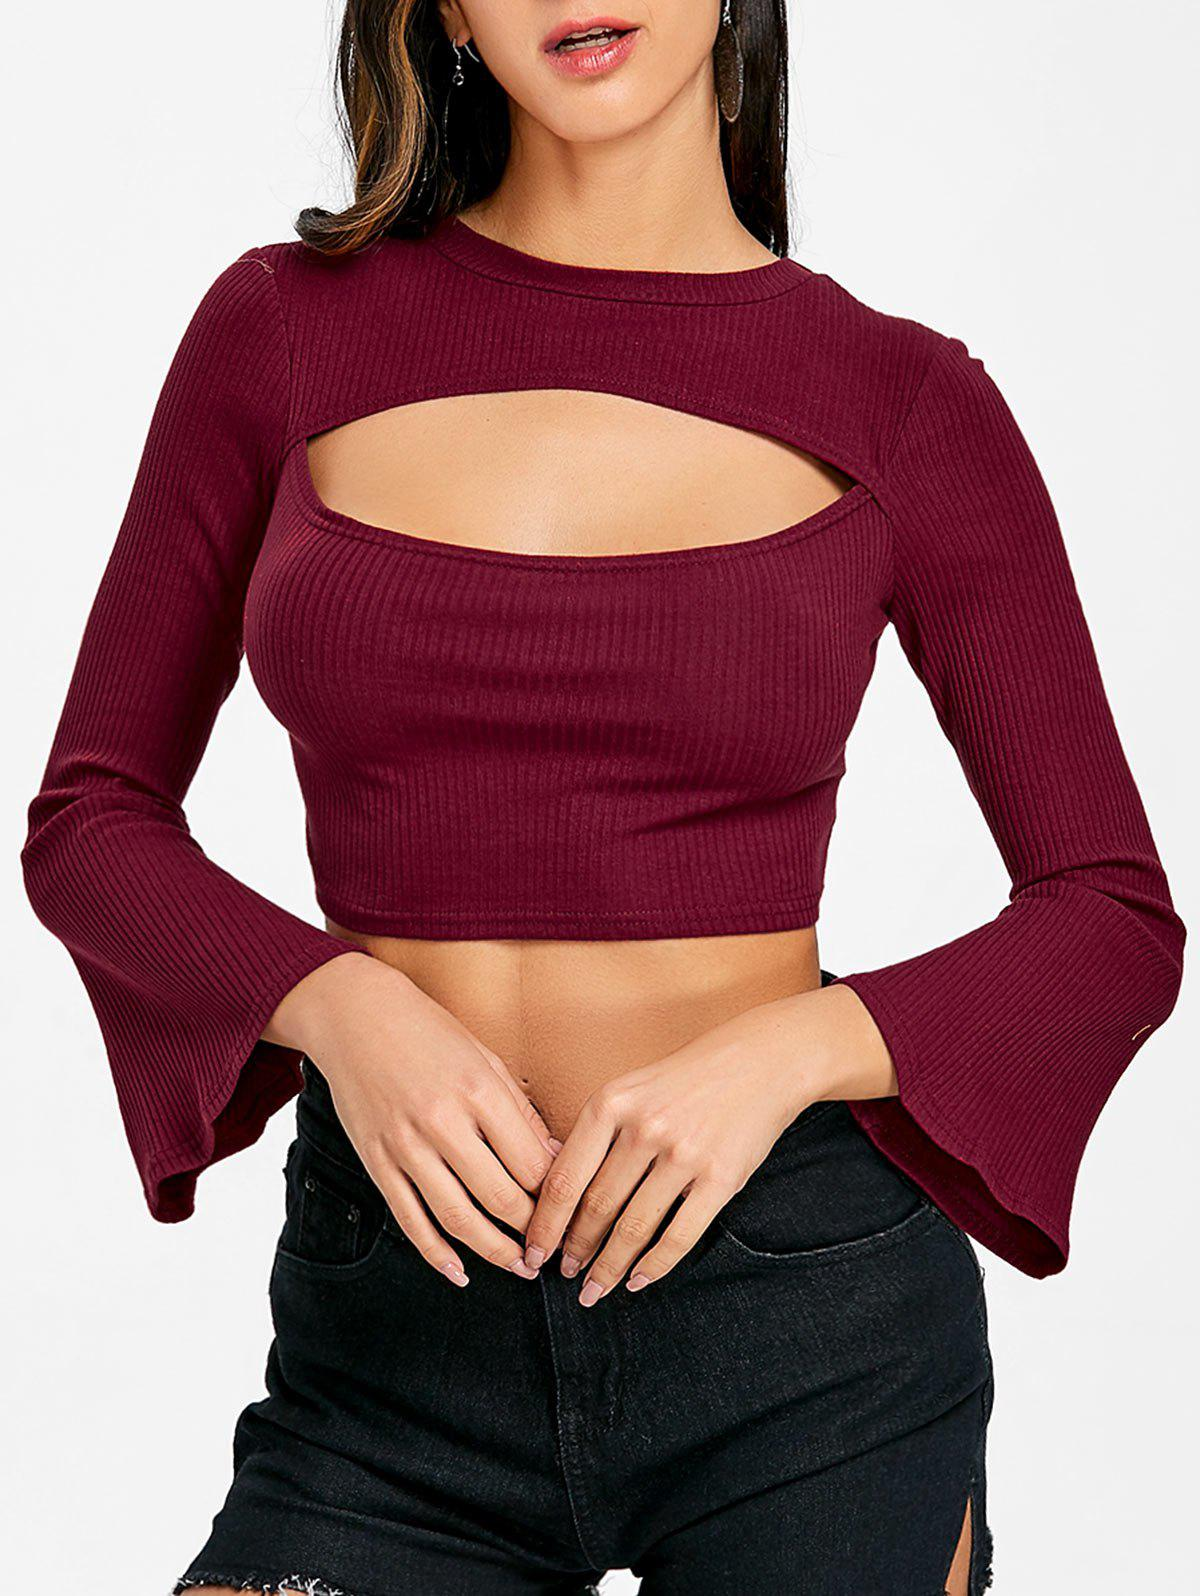 Flare Sleeve Cropped Cut Out Rib Top - WINE RED XL